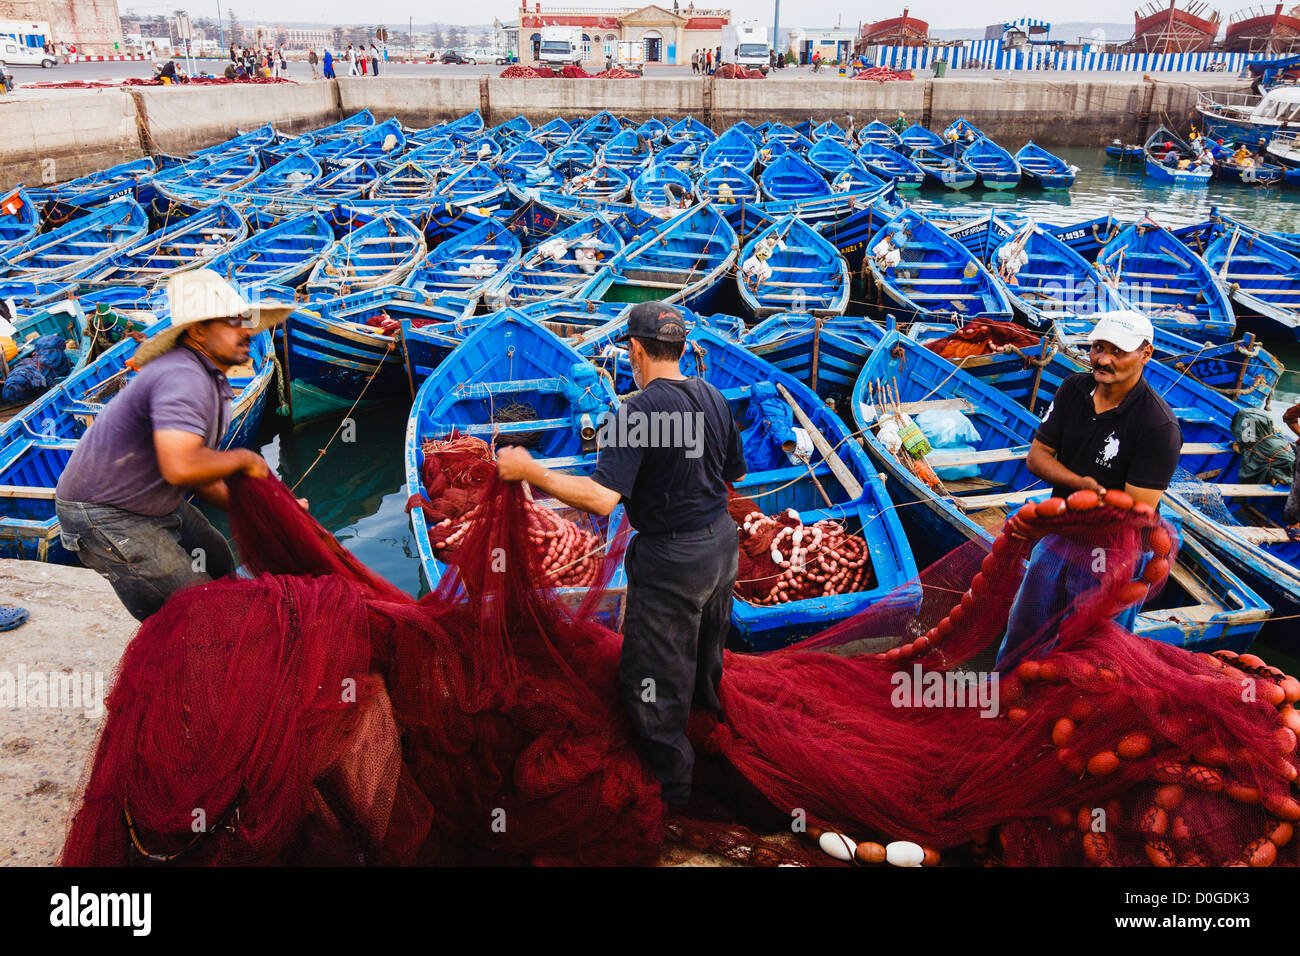 Fishermen collecting their fishing net at the harbor of Essaouira, Morocco - Stock Image